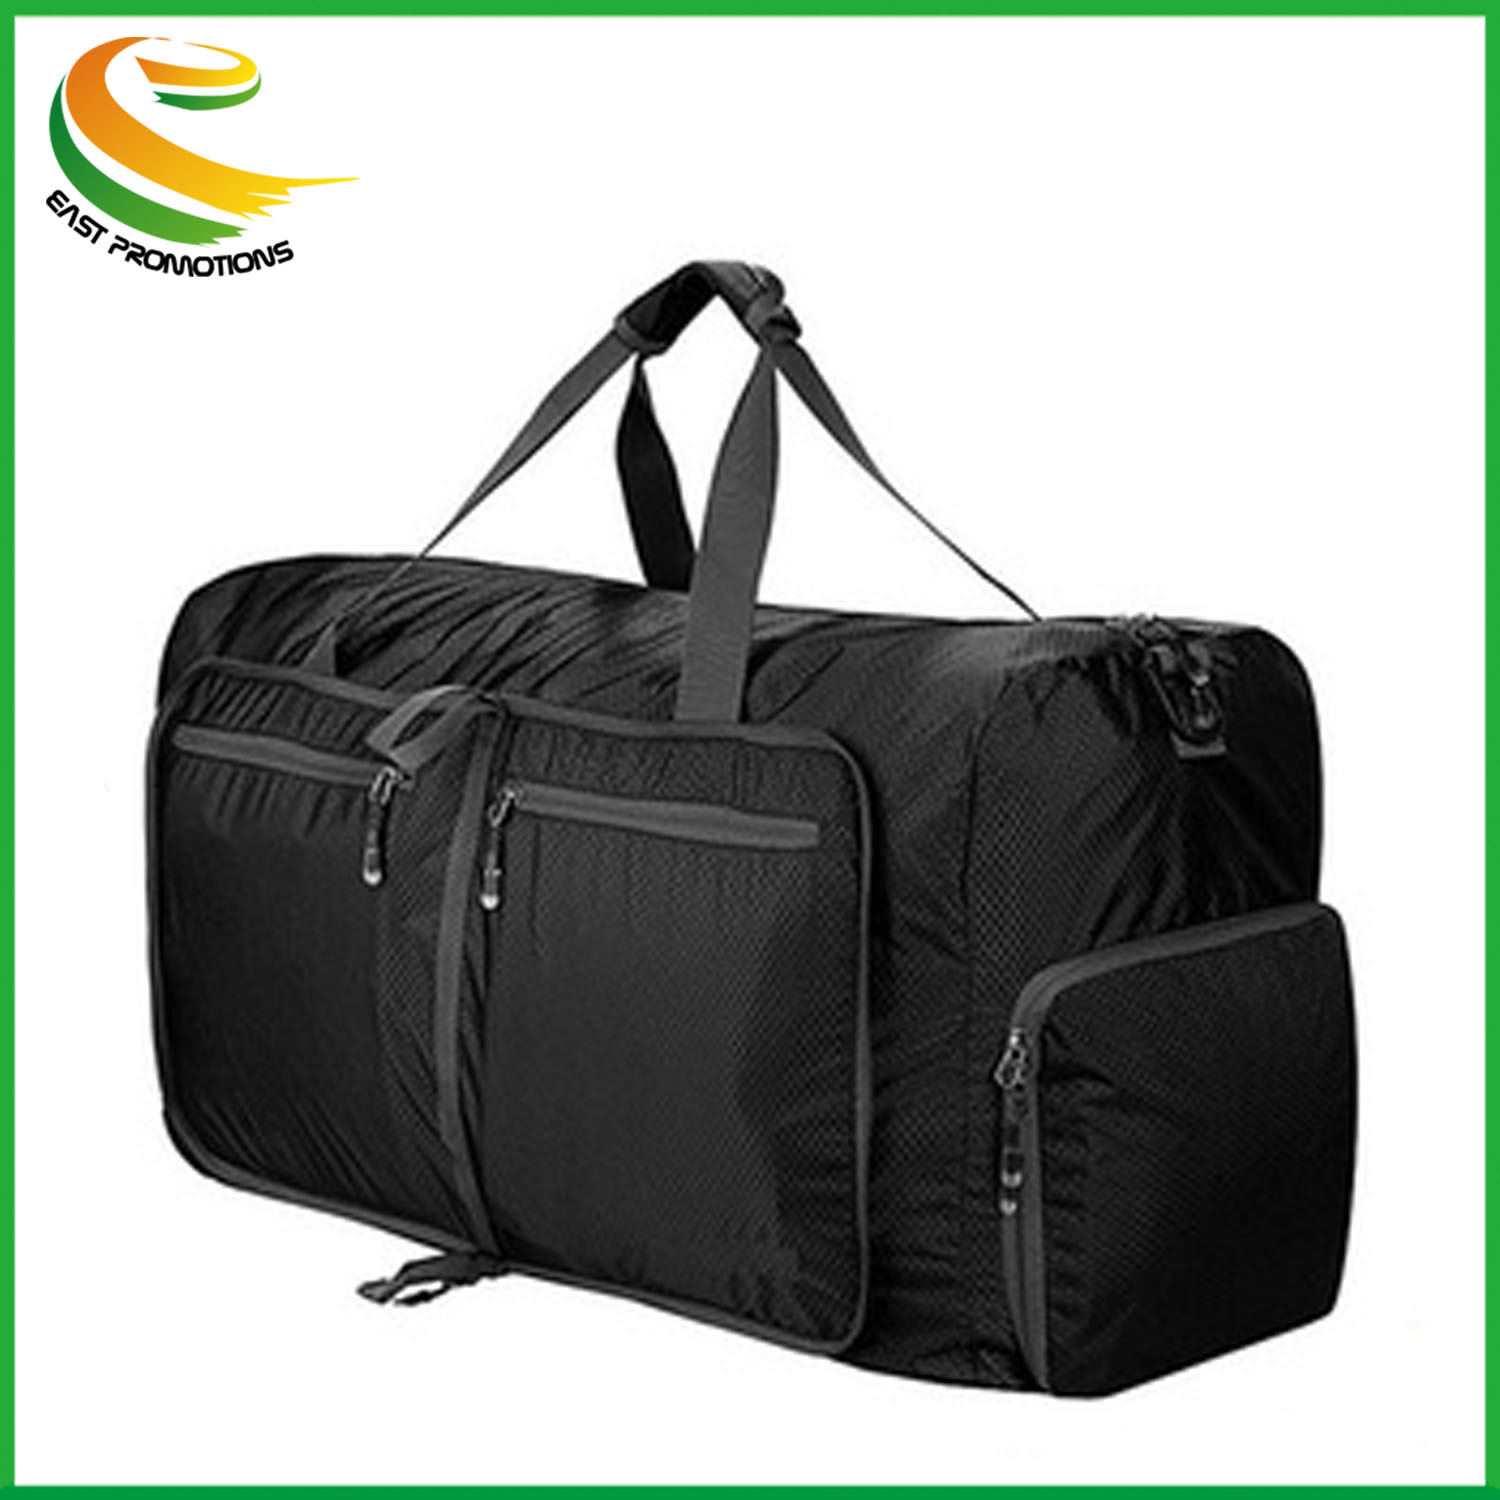 6edce67ea4cce4 Foldable Travel Duffel Bag Luggage Sports Gym Water Resistant Nylon Waterproof  Bag